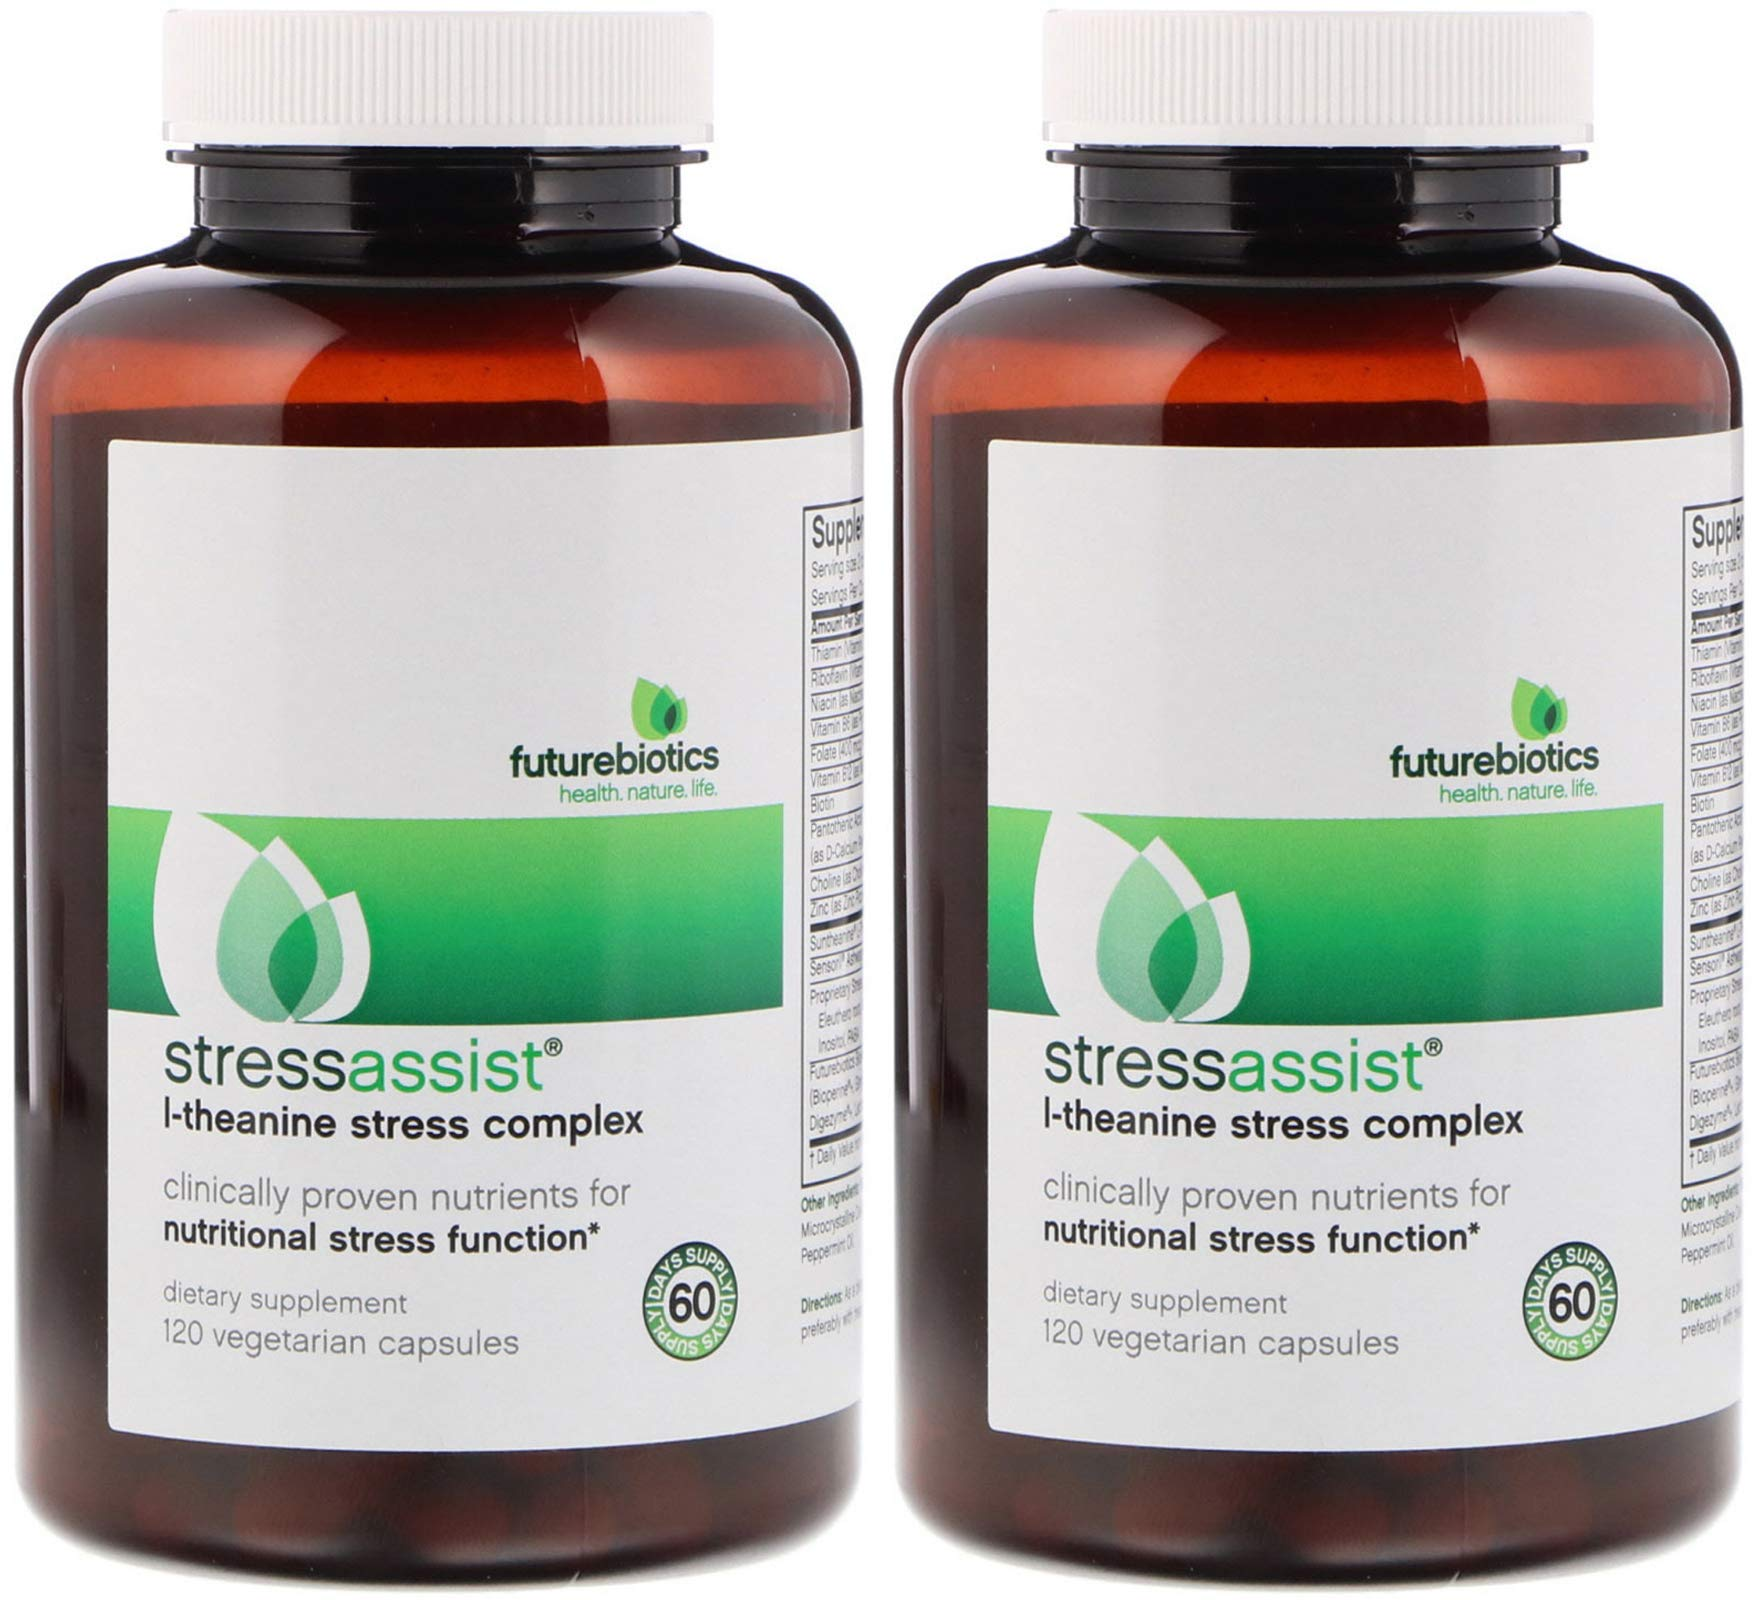 Futurebiotics Stress Assist L Theanine Stress Complex (Pack of 2) Clinically Proven Nutrients for Nutritional Stress Function, 120 Count Each by Supplement